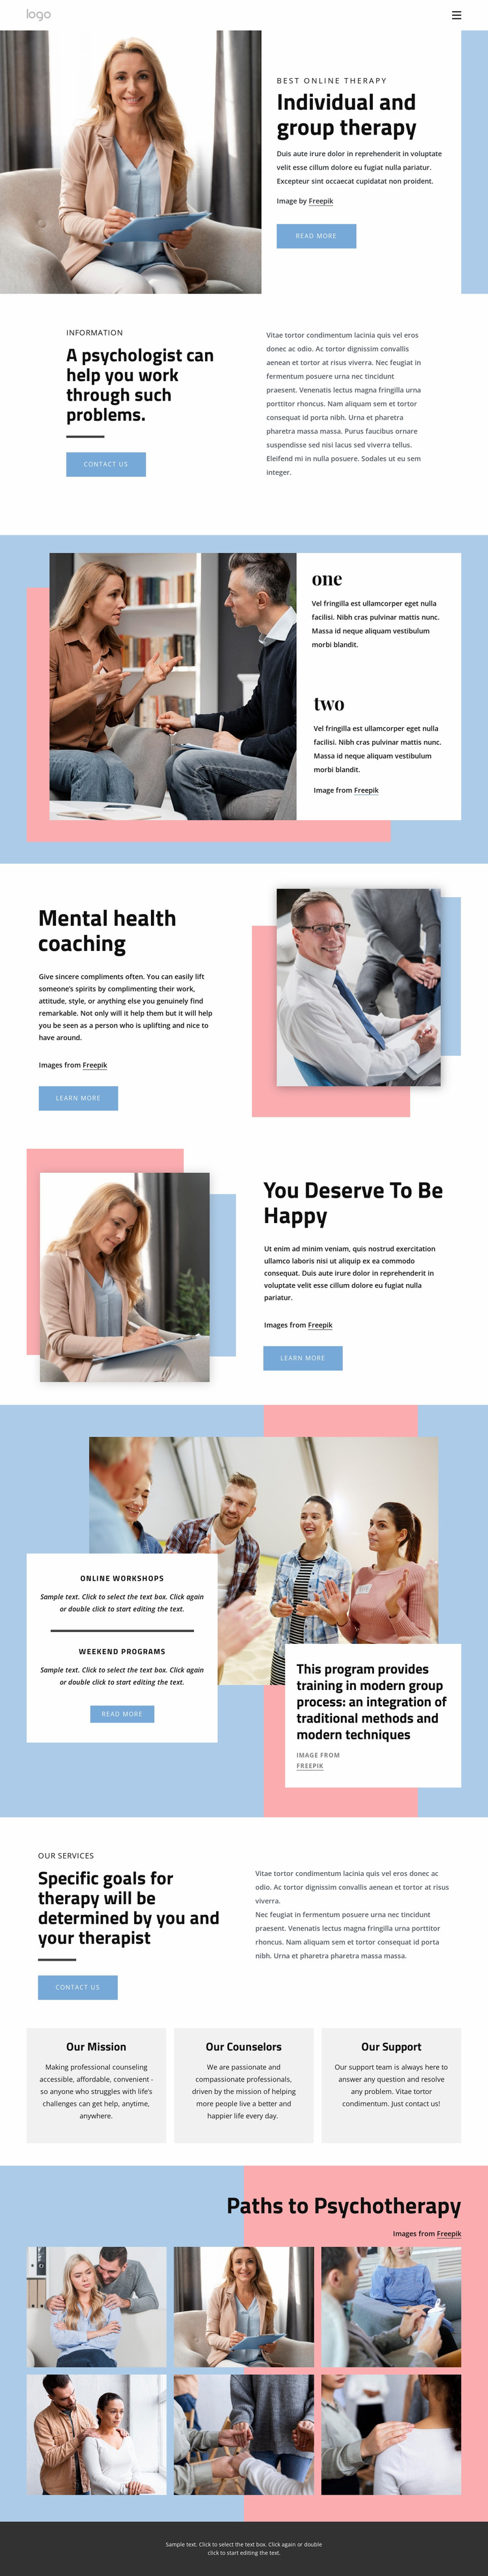 Undividual and group therapy Website Design